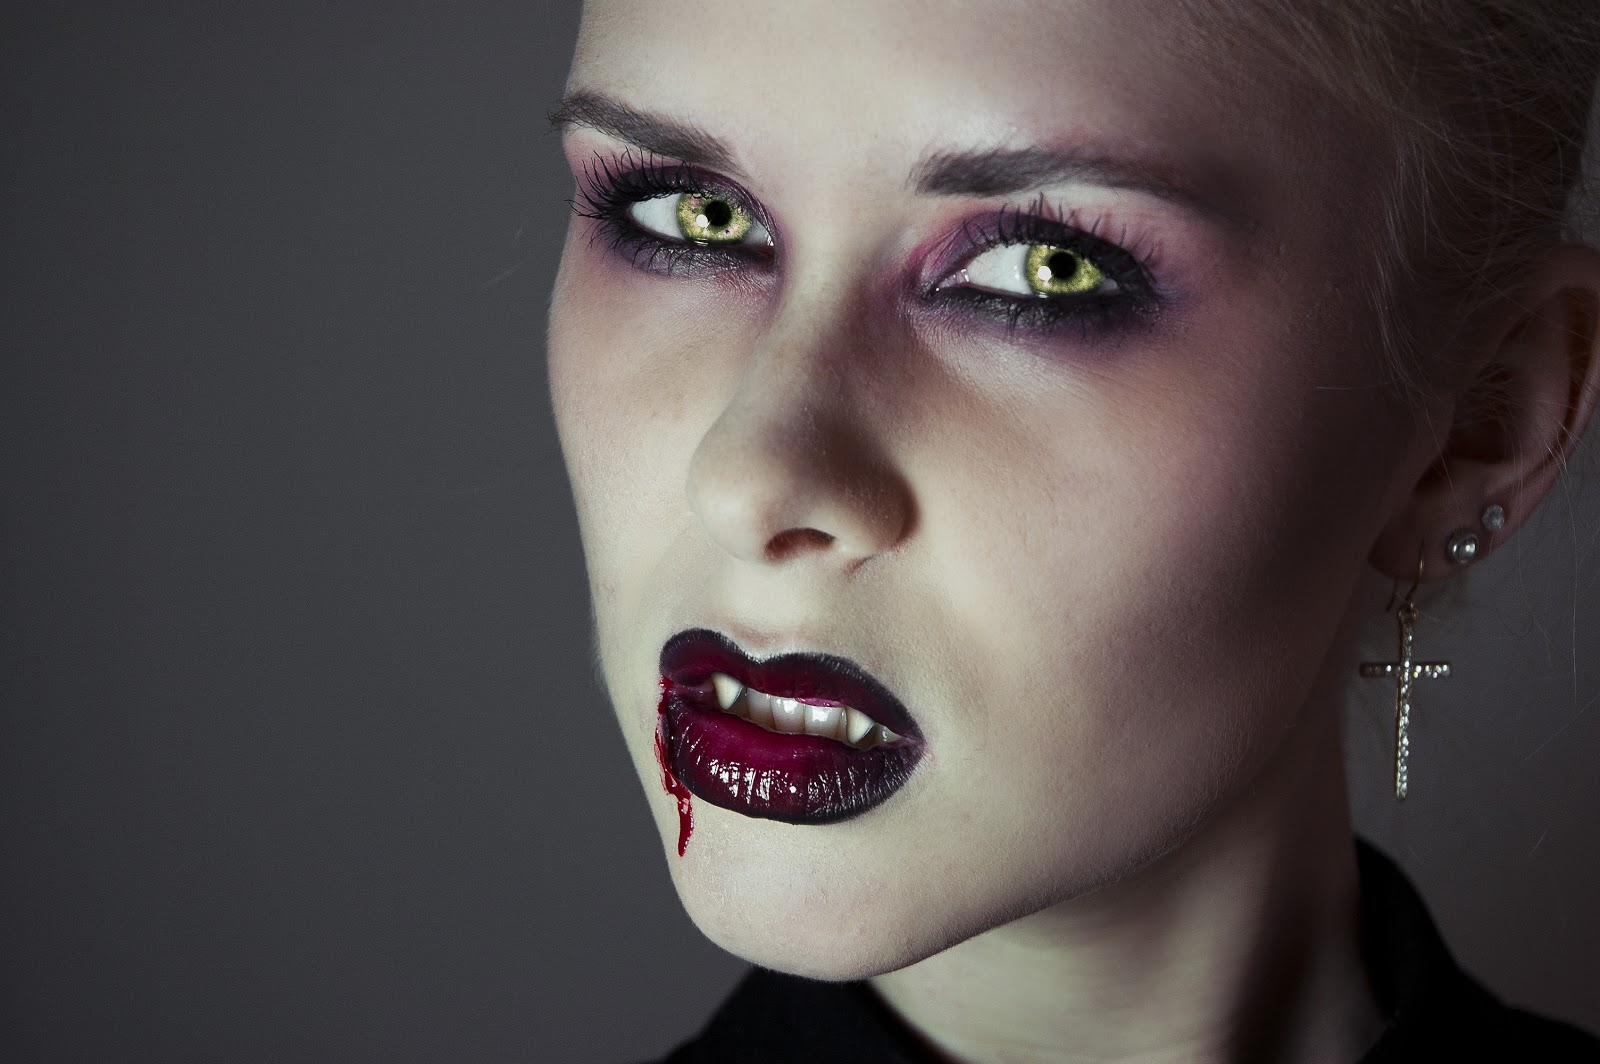 Beauty by Linde: HALLOWEEN SPECIAL - Seductive Vampire Makeup